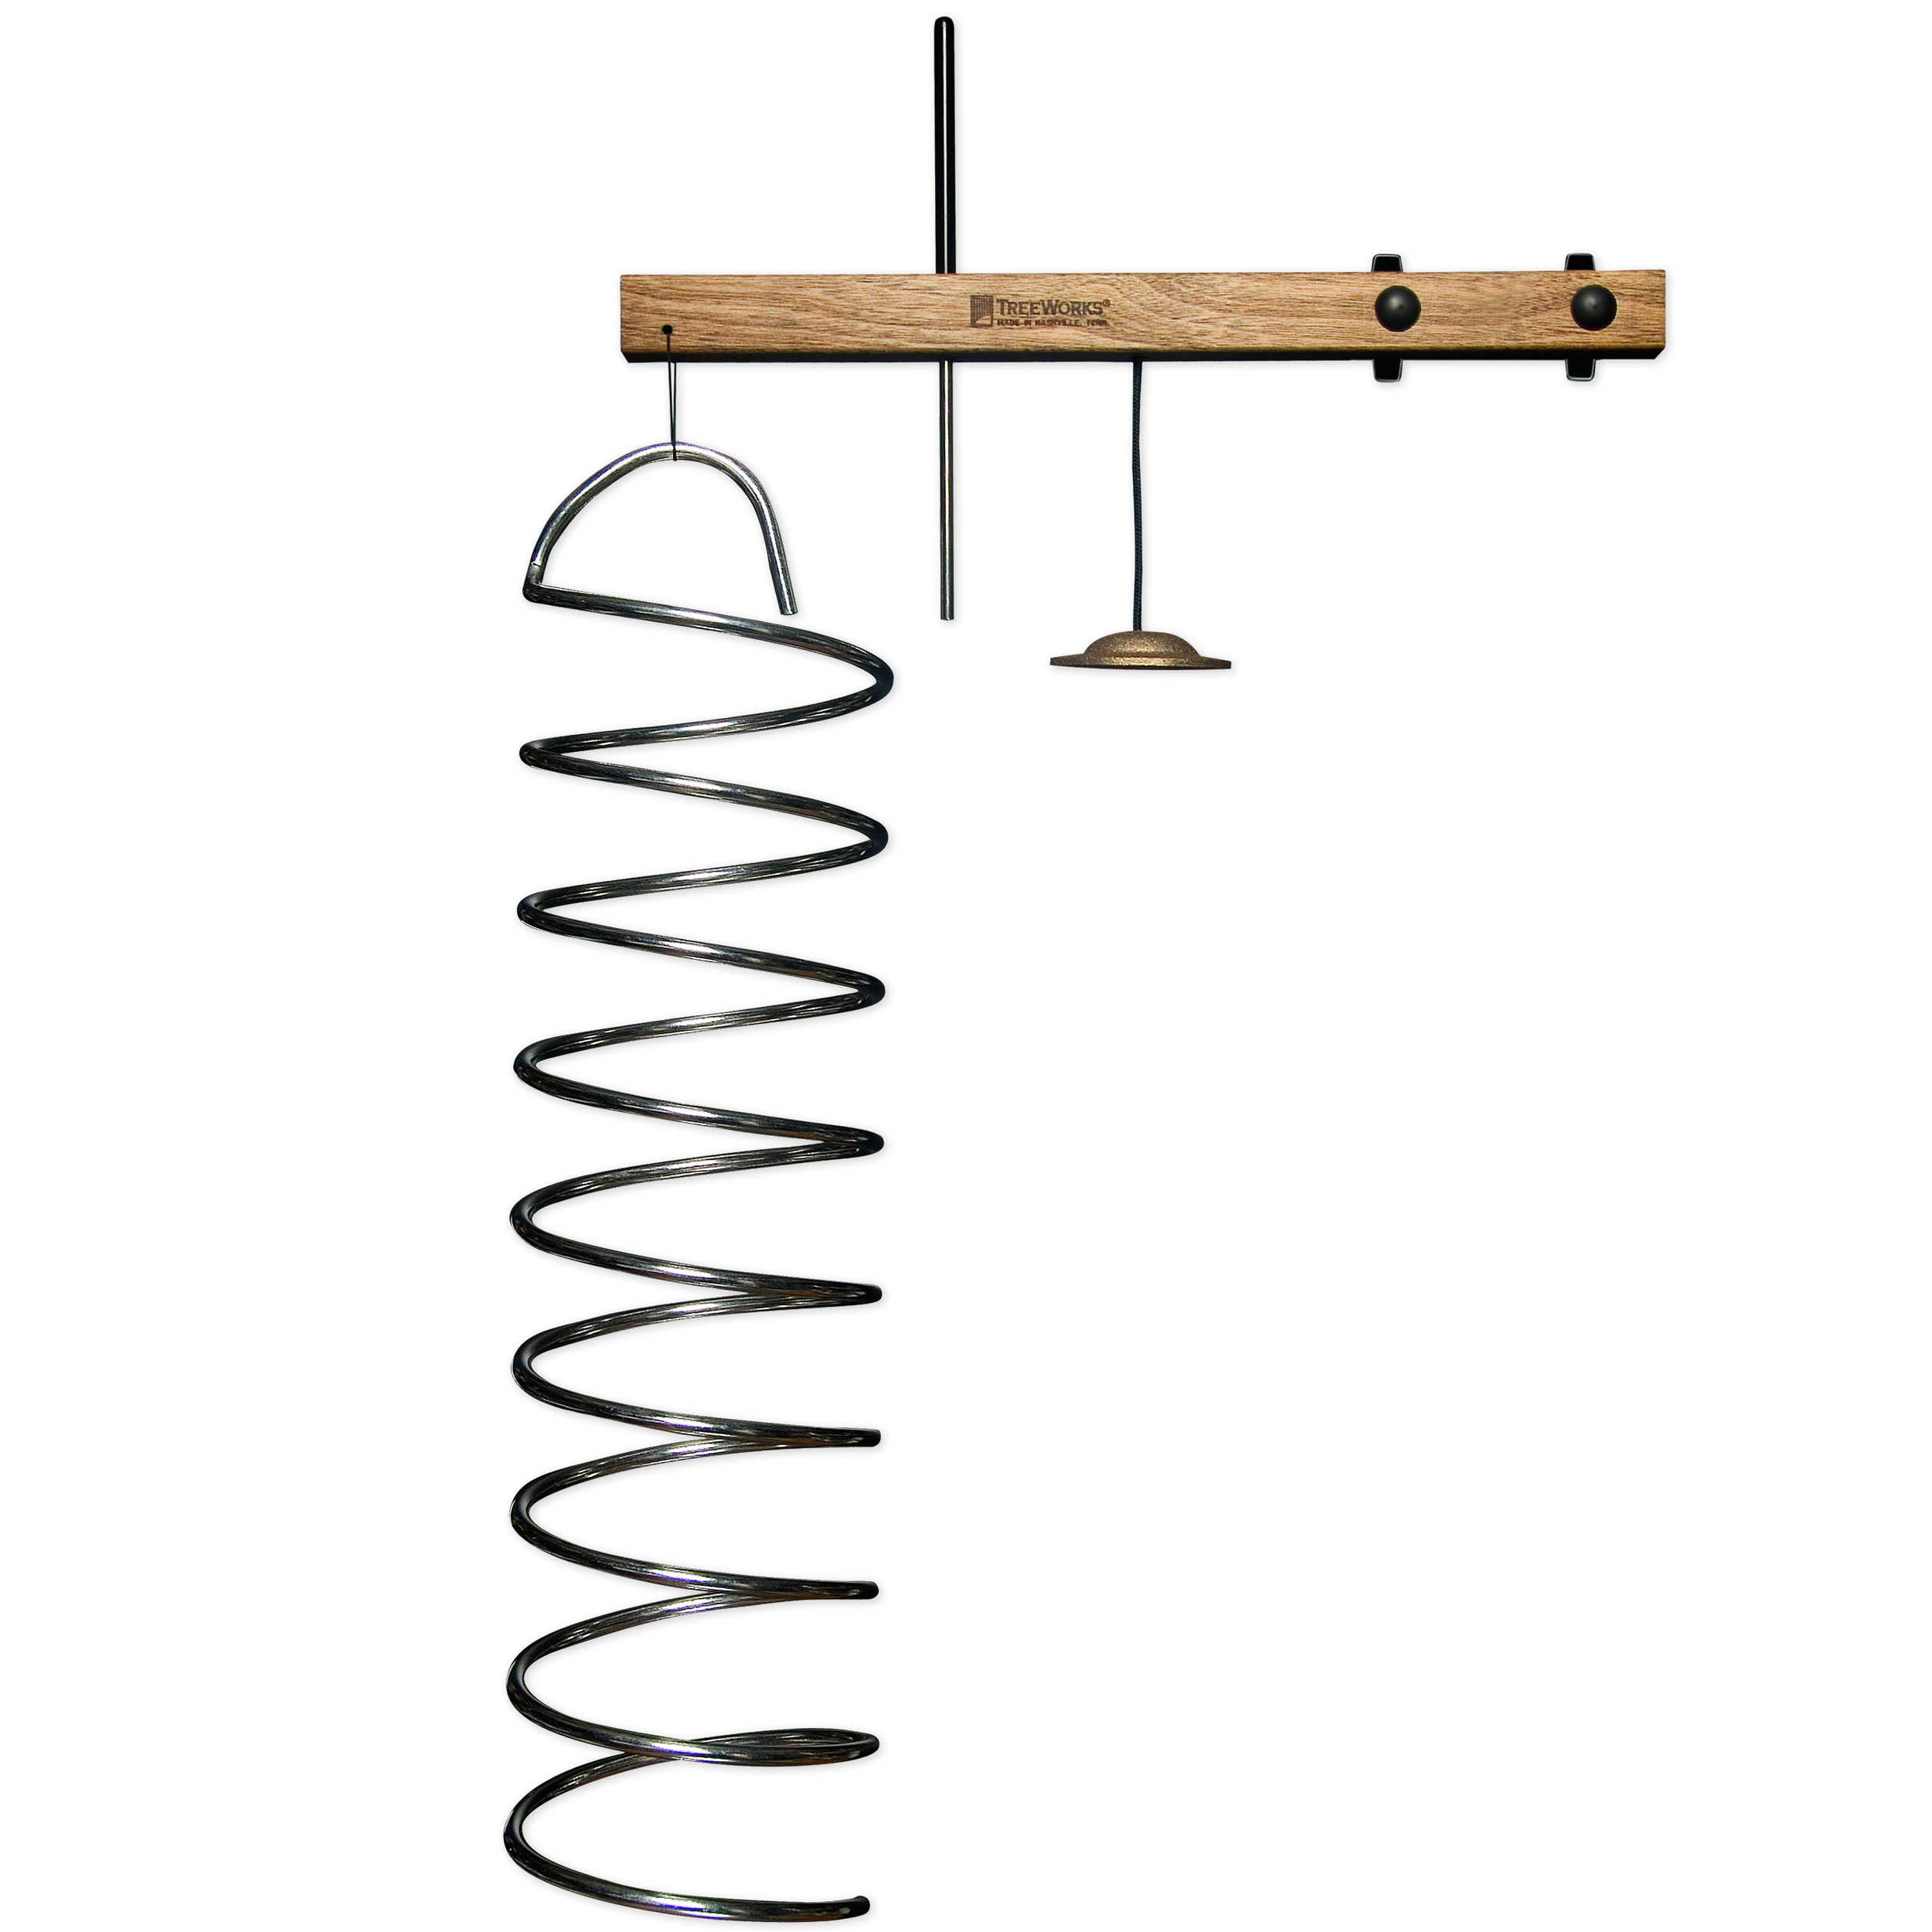 TreeWorks Spring Tree Aluminum Coil with Mount, Steel Beater and Finger Cymbal